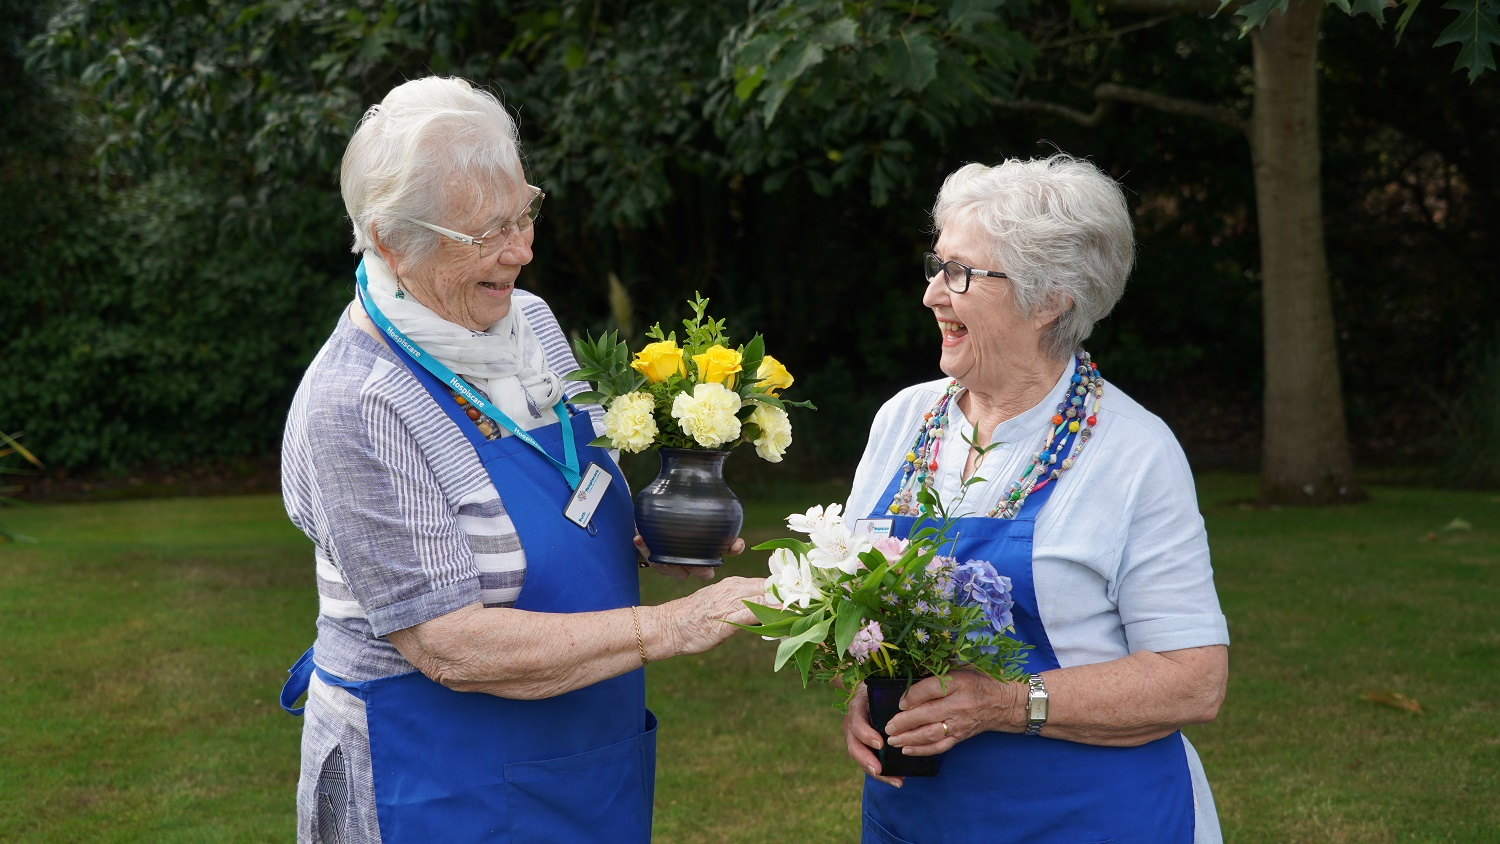 Meet the flower volunteers of Hospiscare in Exeter